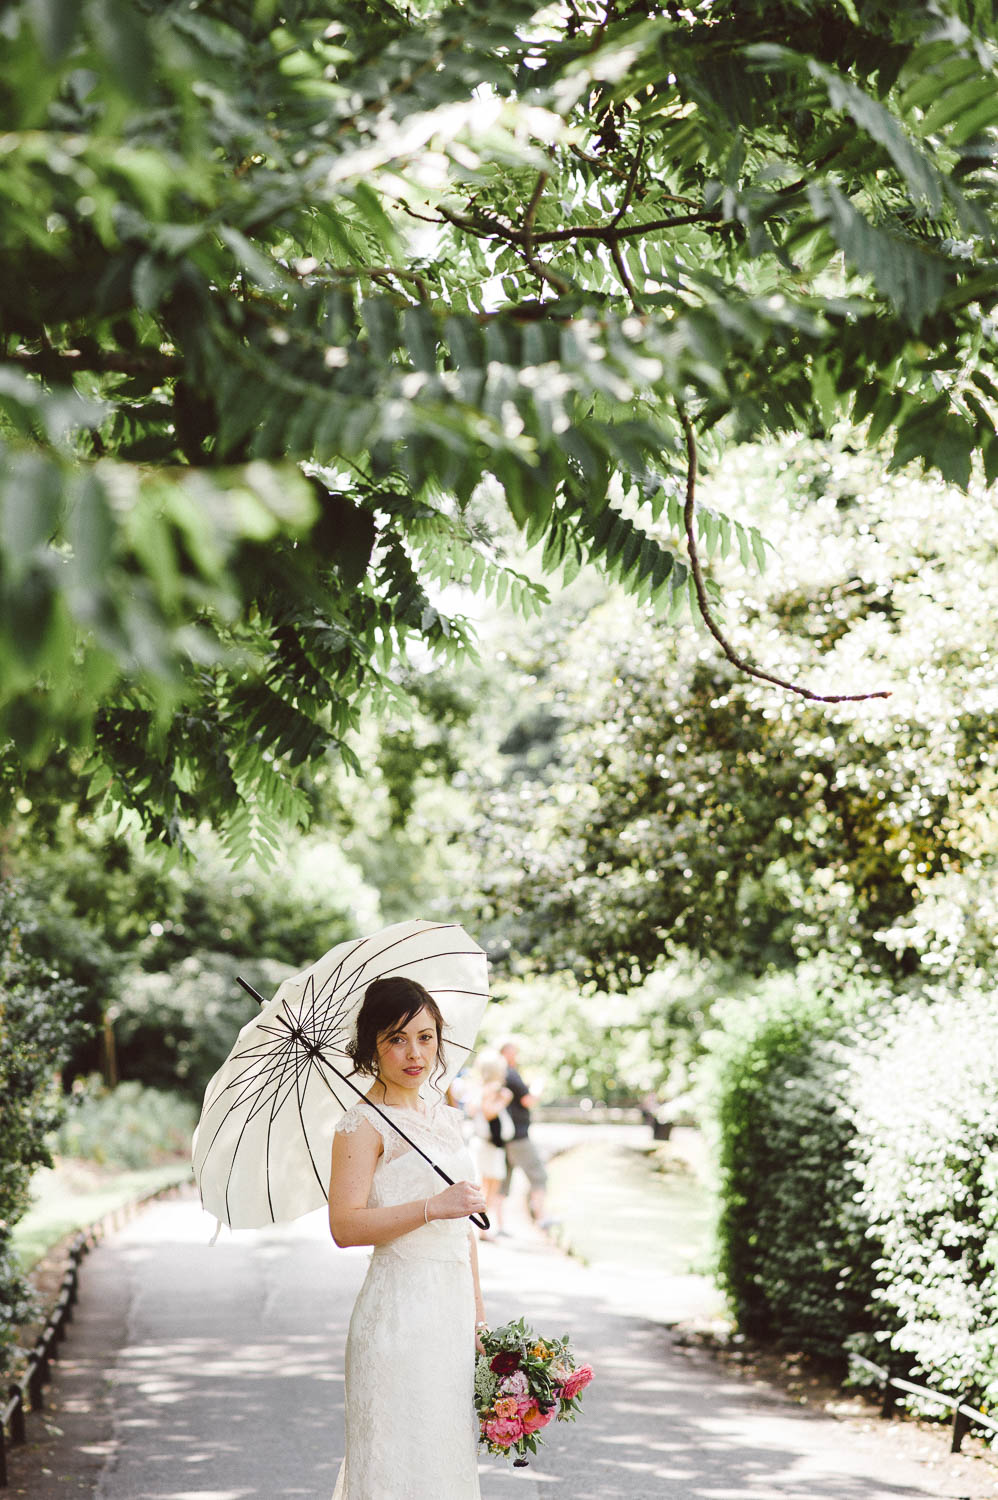 bride with parasol in greenery park